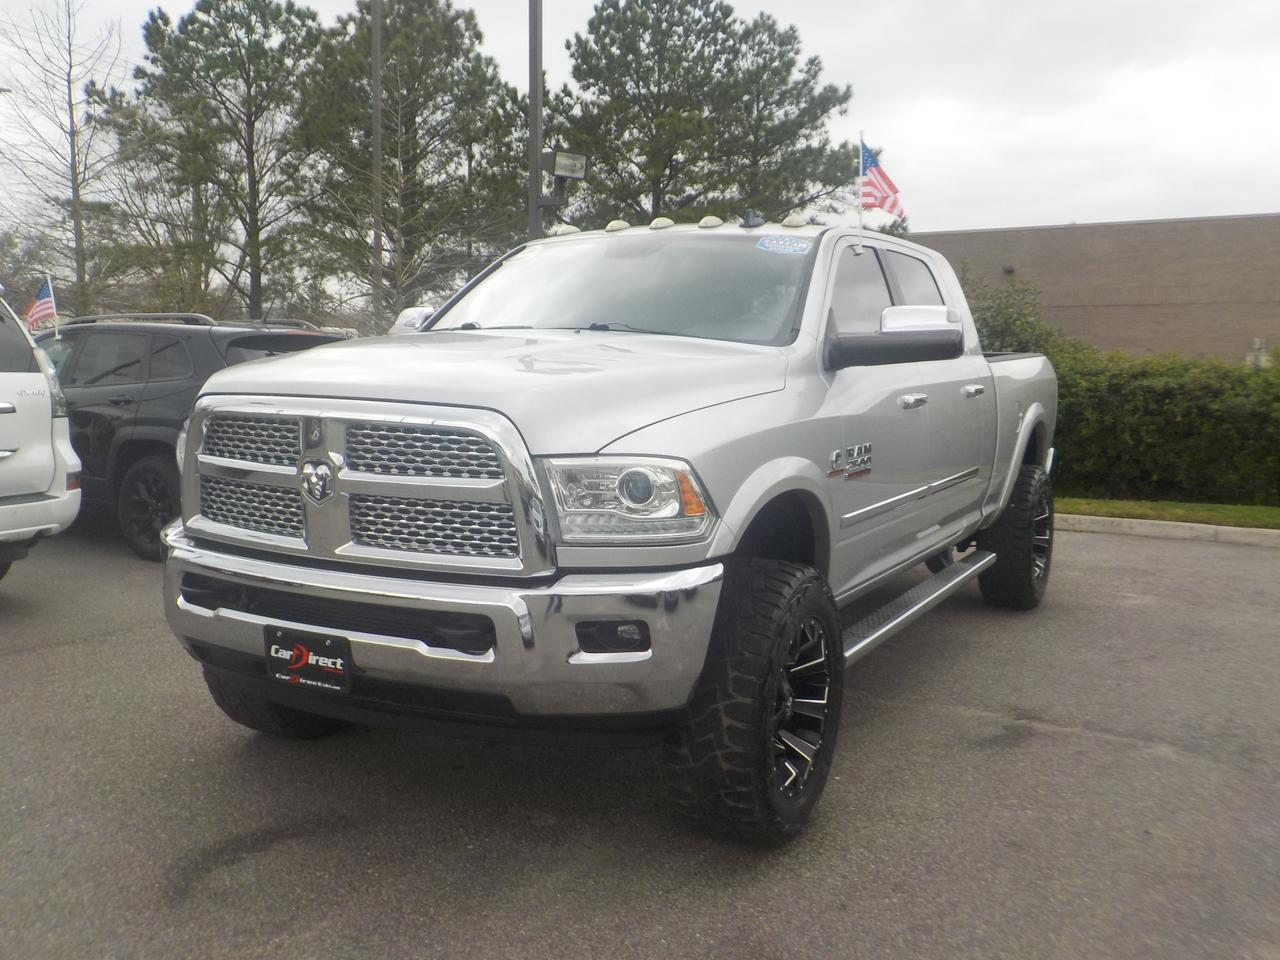 2014 DODGE RAM 2500 MEGA CAB LARAMIE 4X4, ONE OWNER, DIESEL, LEATHER, NAVIGATION, TOW PACKAGE, ONLY 43K MILES! Virginia Beach VA